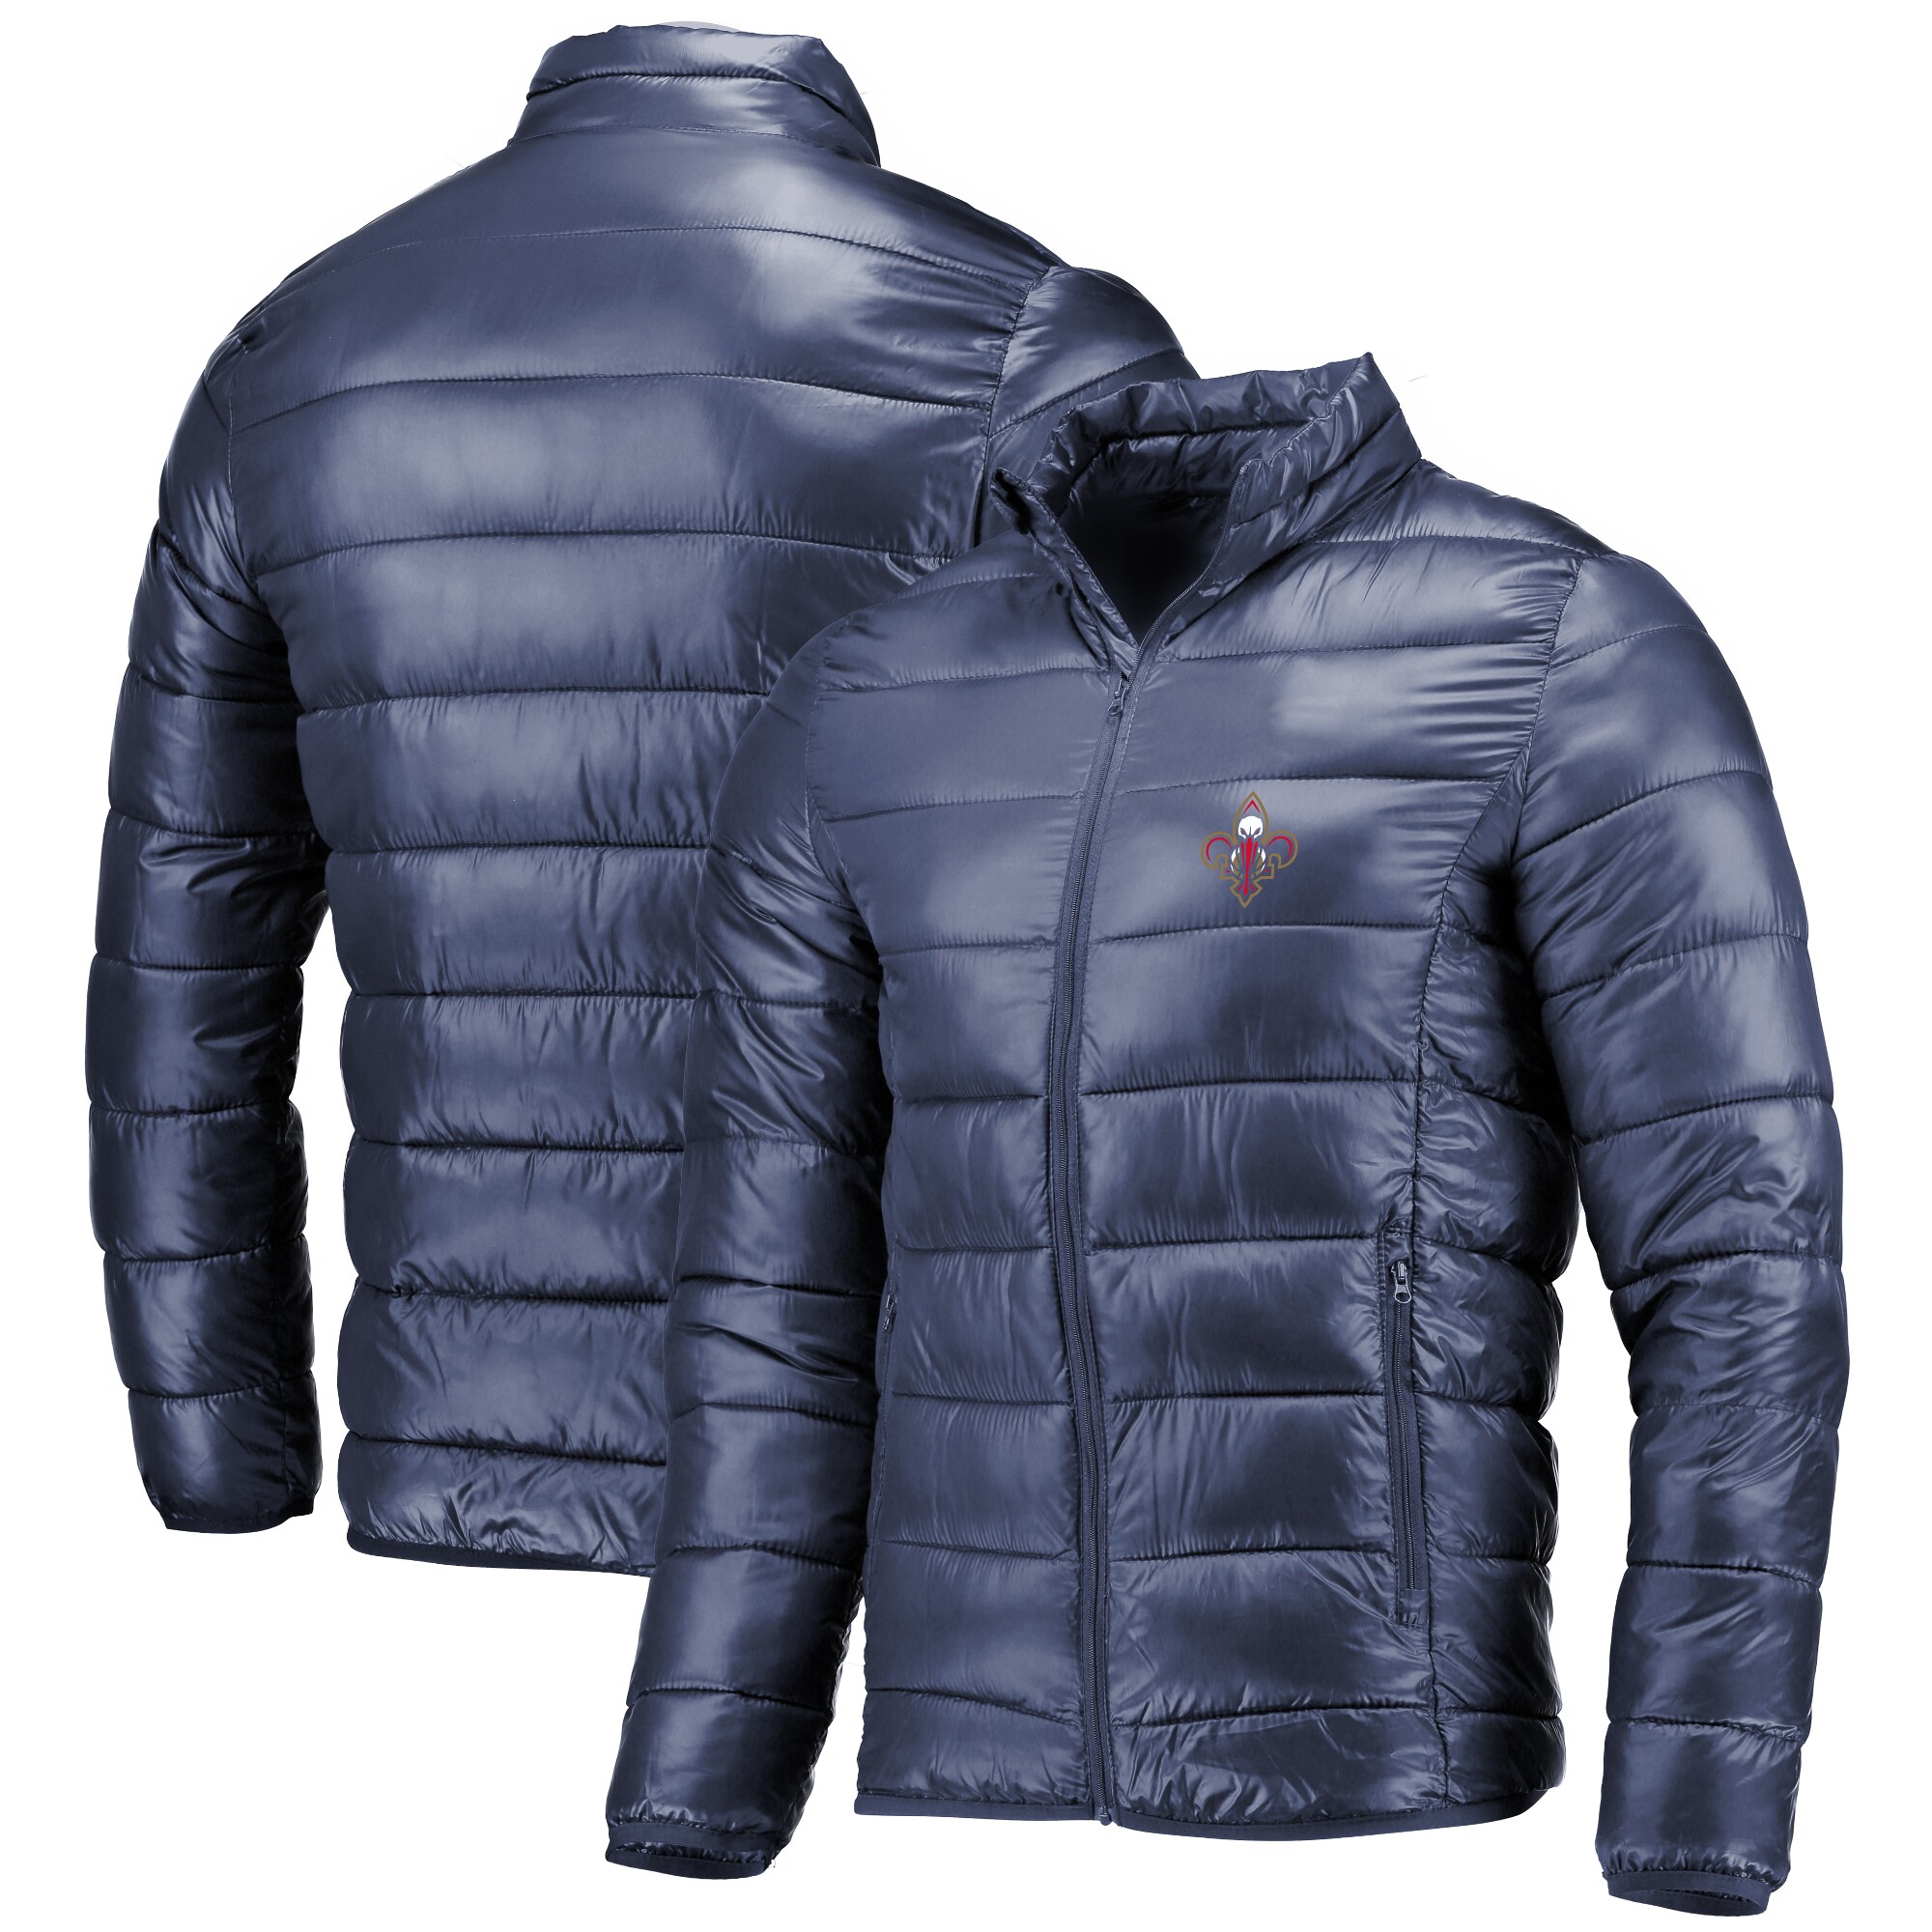 New Orleans Pelicans Fanatics Branded Polyester Filled Puffer Jacket - Navy